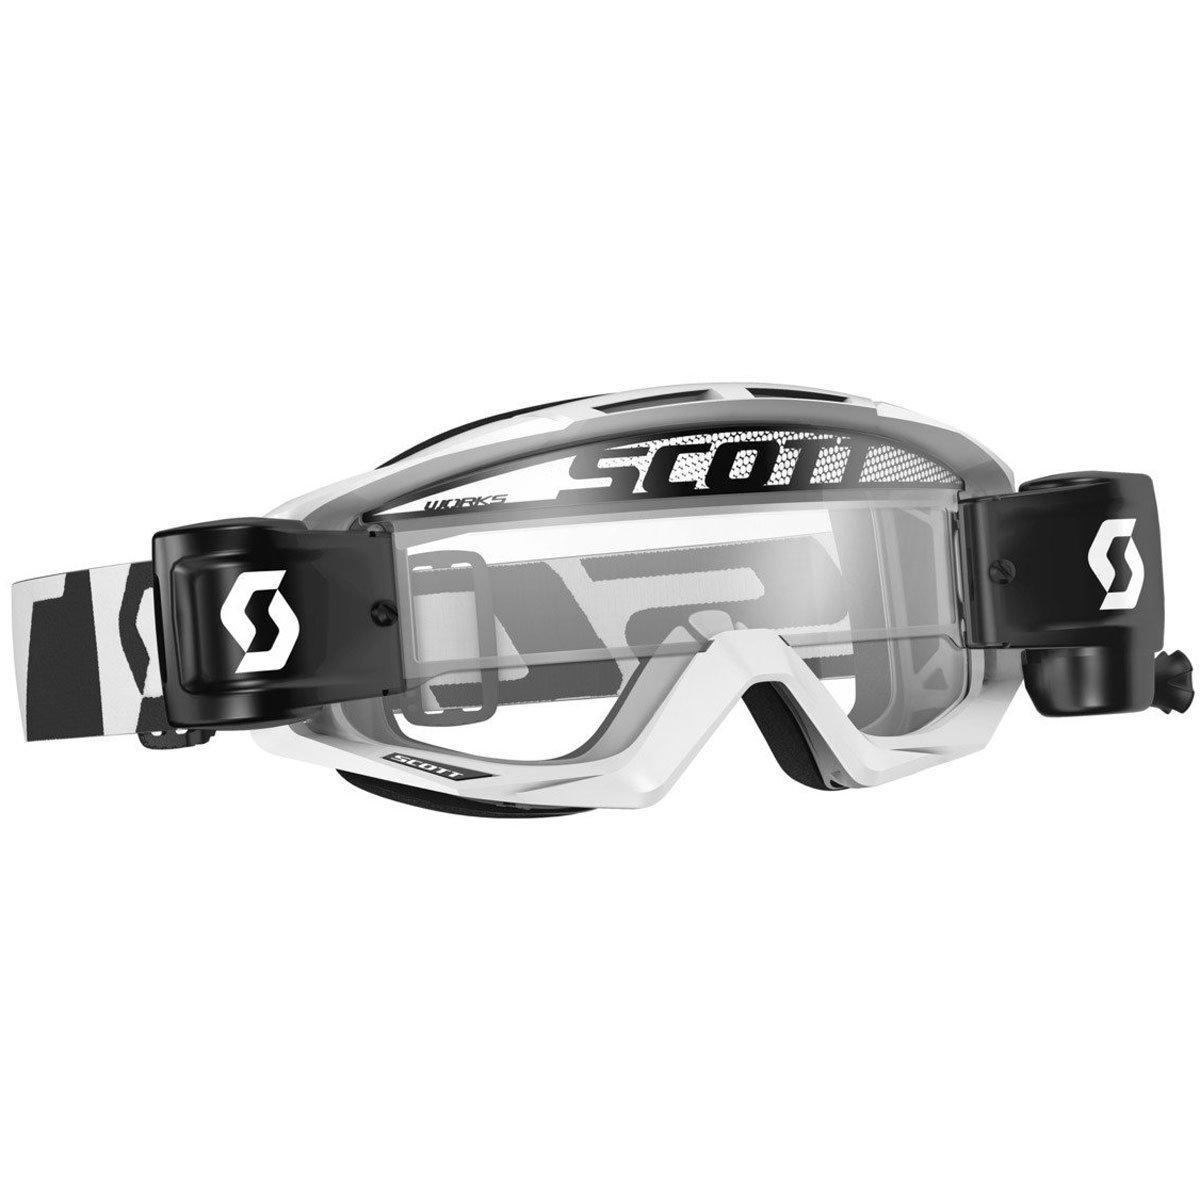 Scott Tyrant WFS Goggles - White/Clear - One Size